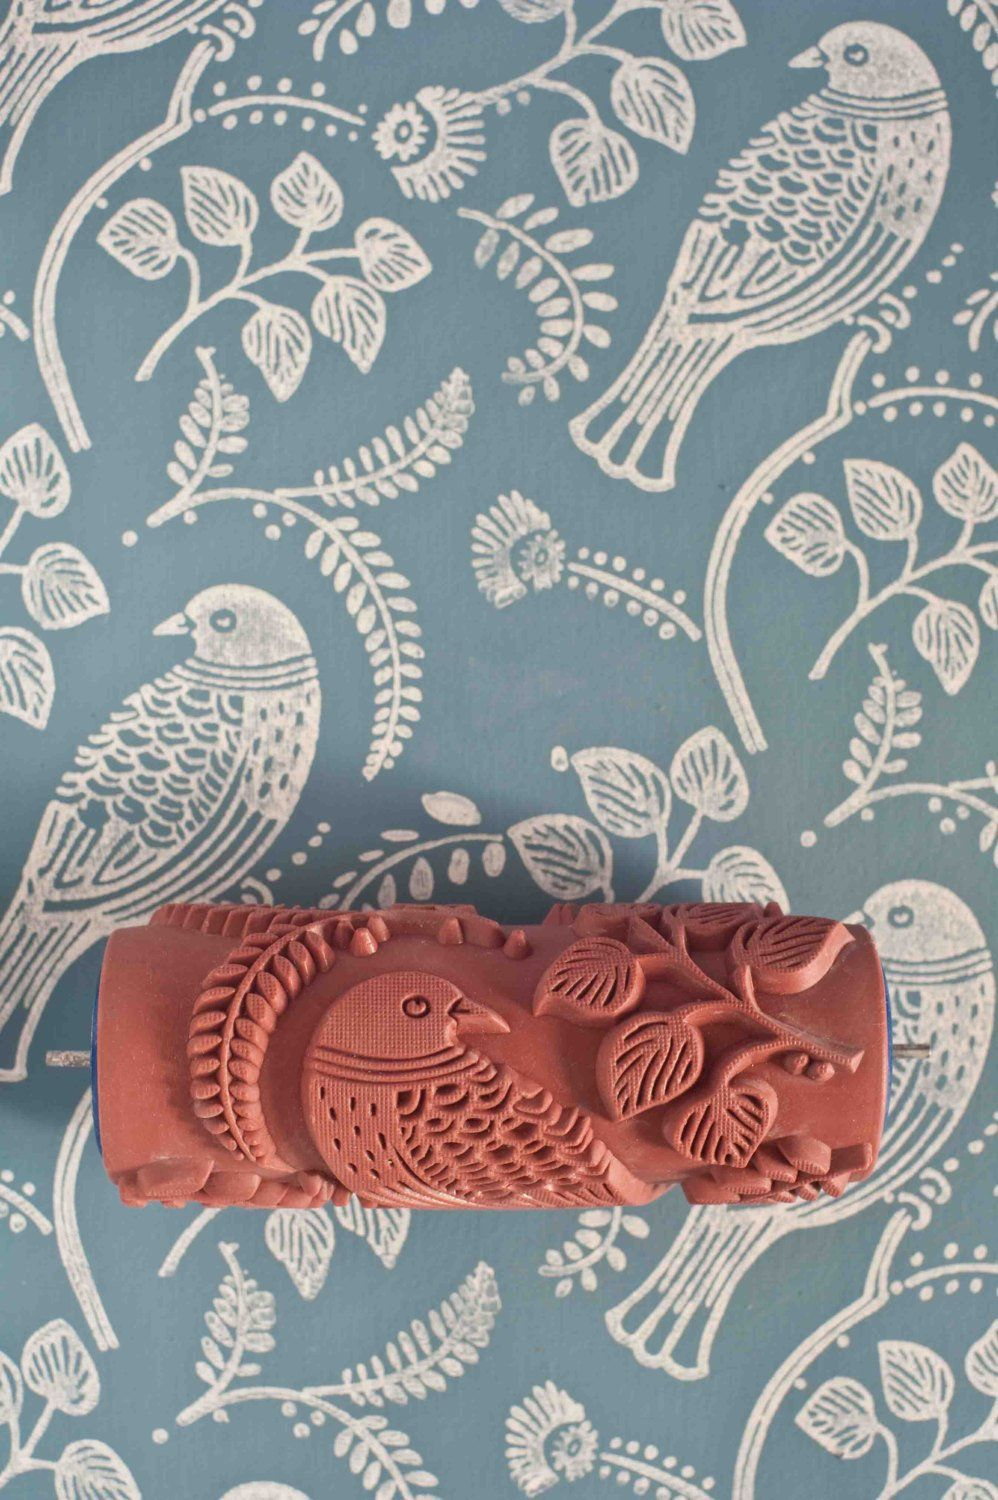 Tuvi Patterned Paint Roller From The Painted House Etsy Patterned Paint Rollers Paint Roller Painting Patterns